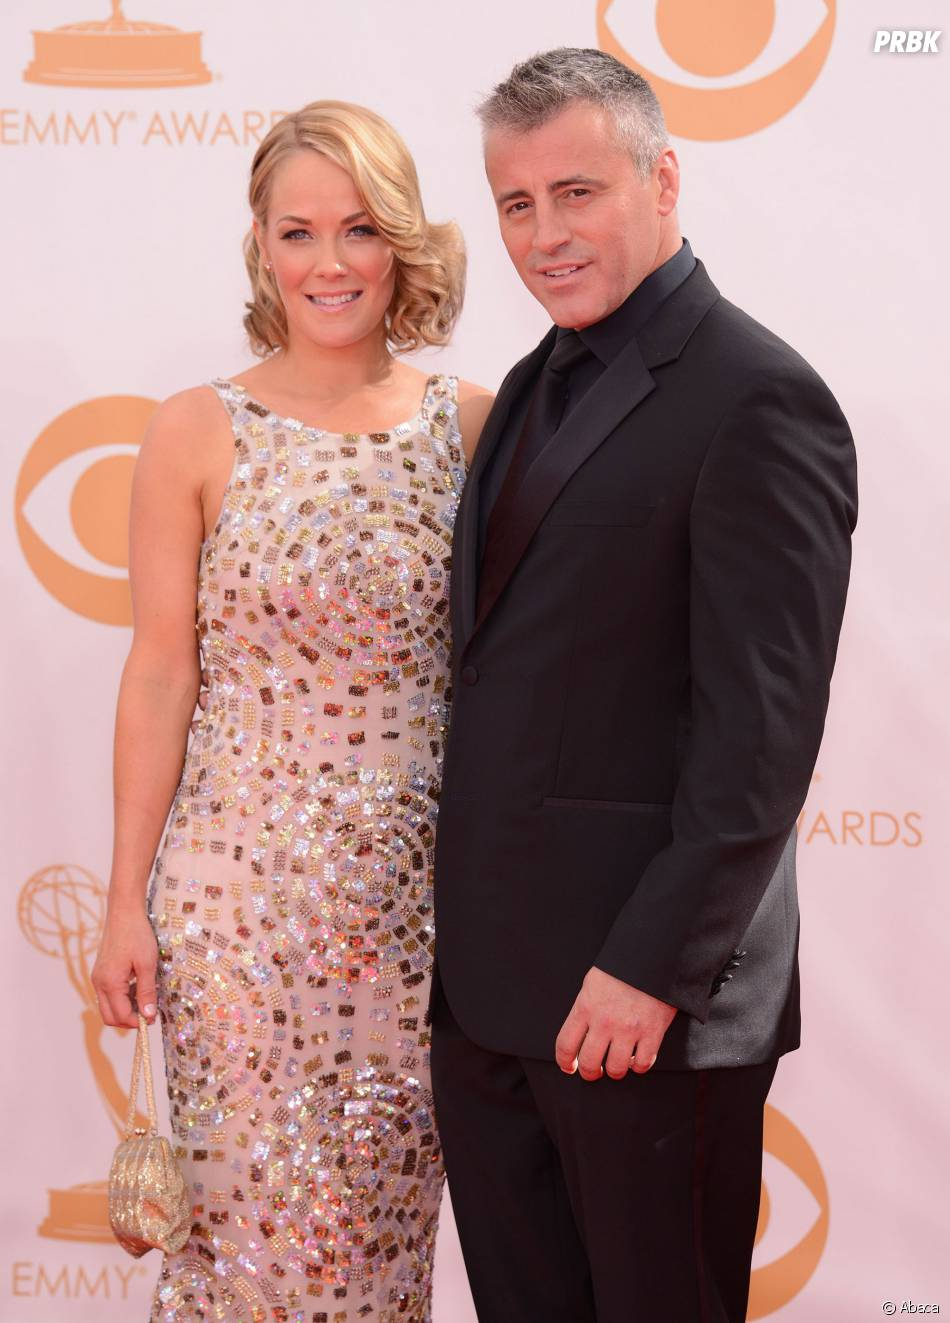 Matt Leblanc et sa femme aux Emmy Awards 2013 le 22 septembre 2013 à Los Angeles